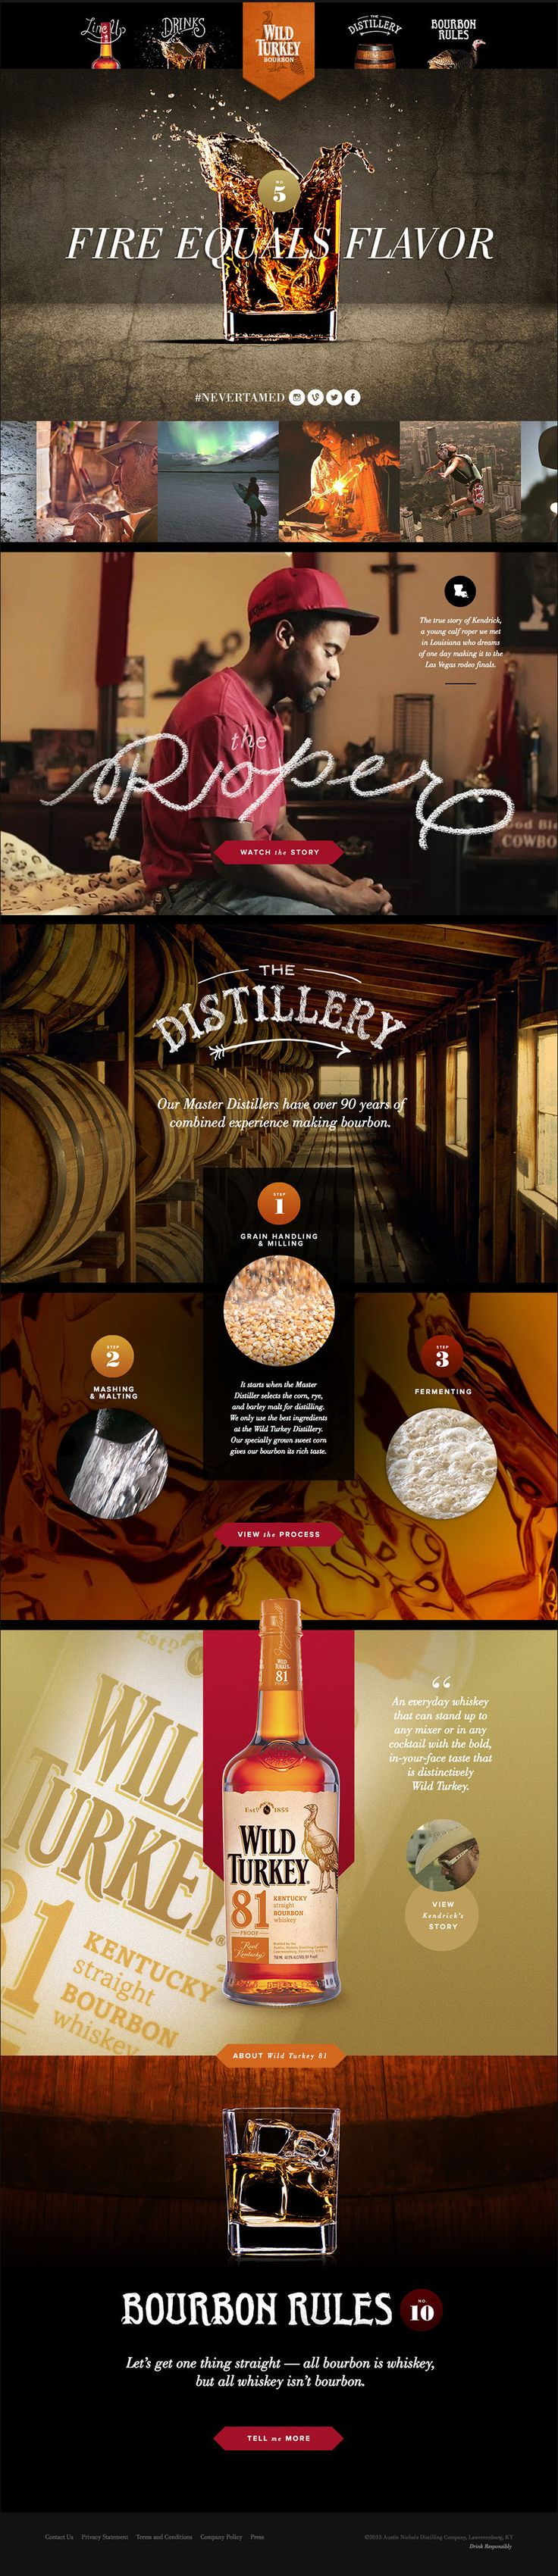 Unique Web Design, Wild Turkey Bourbon #WebDesign #Design